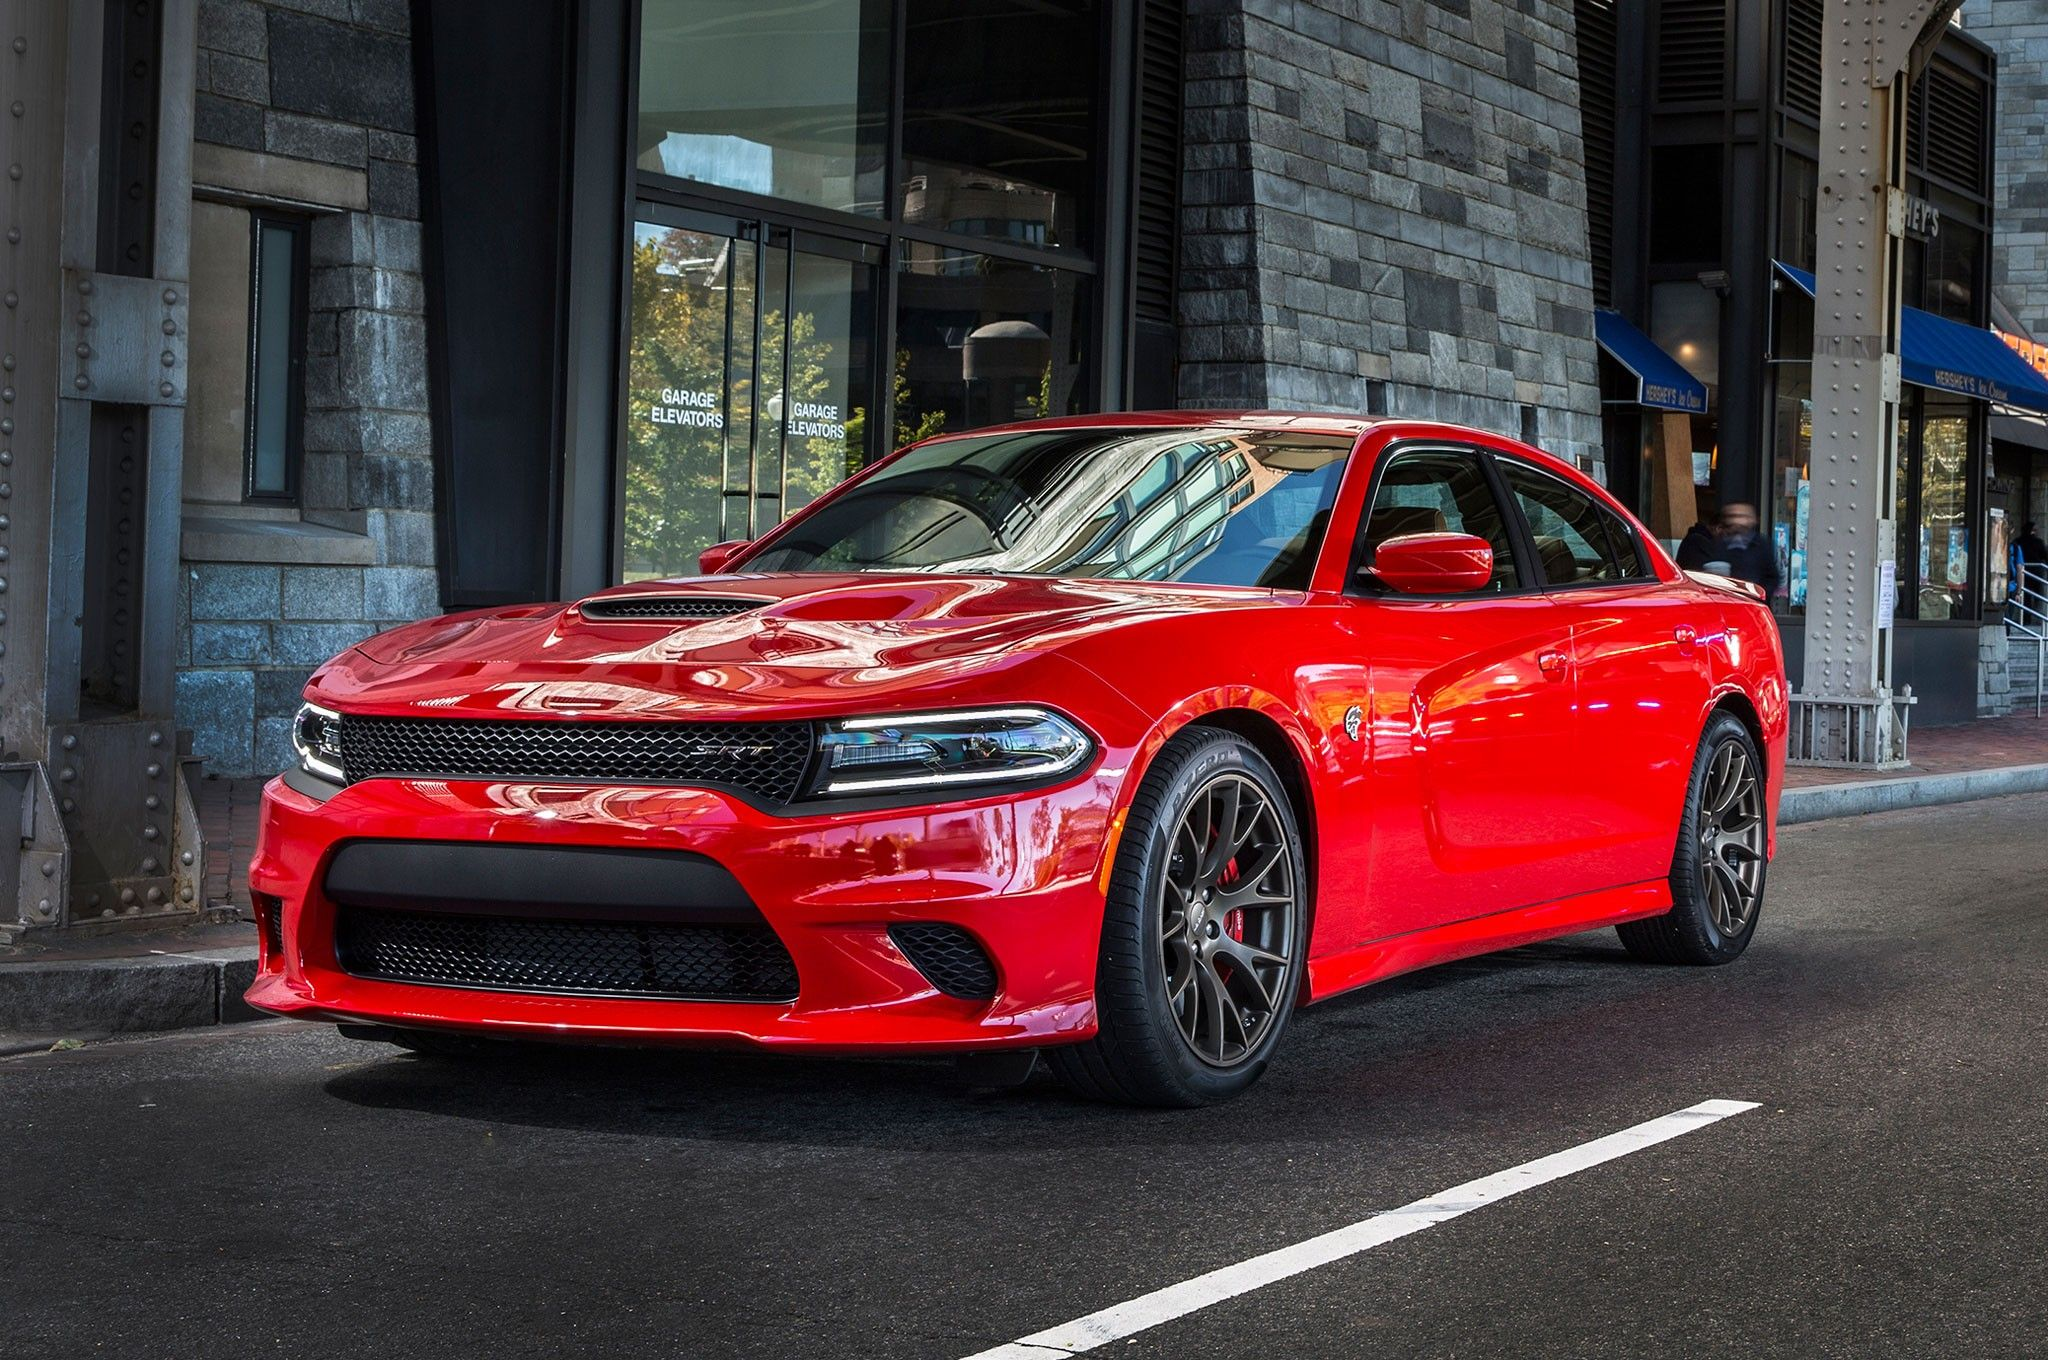 2015 Dodge Charger Hellcat Price Specs And Review Carteachers Com Dodge Charger Srt8 Dodge Charger 2018 Dodge Charger